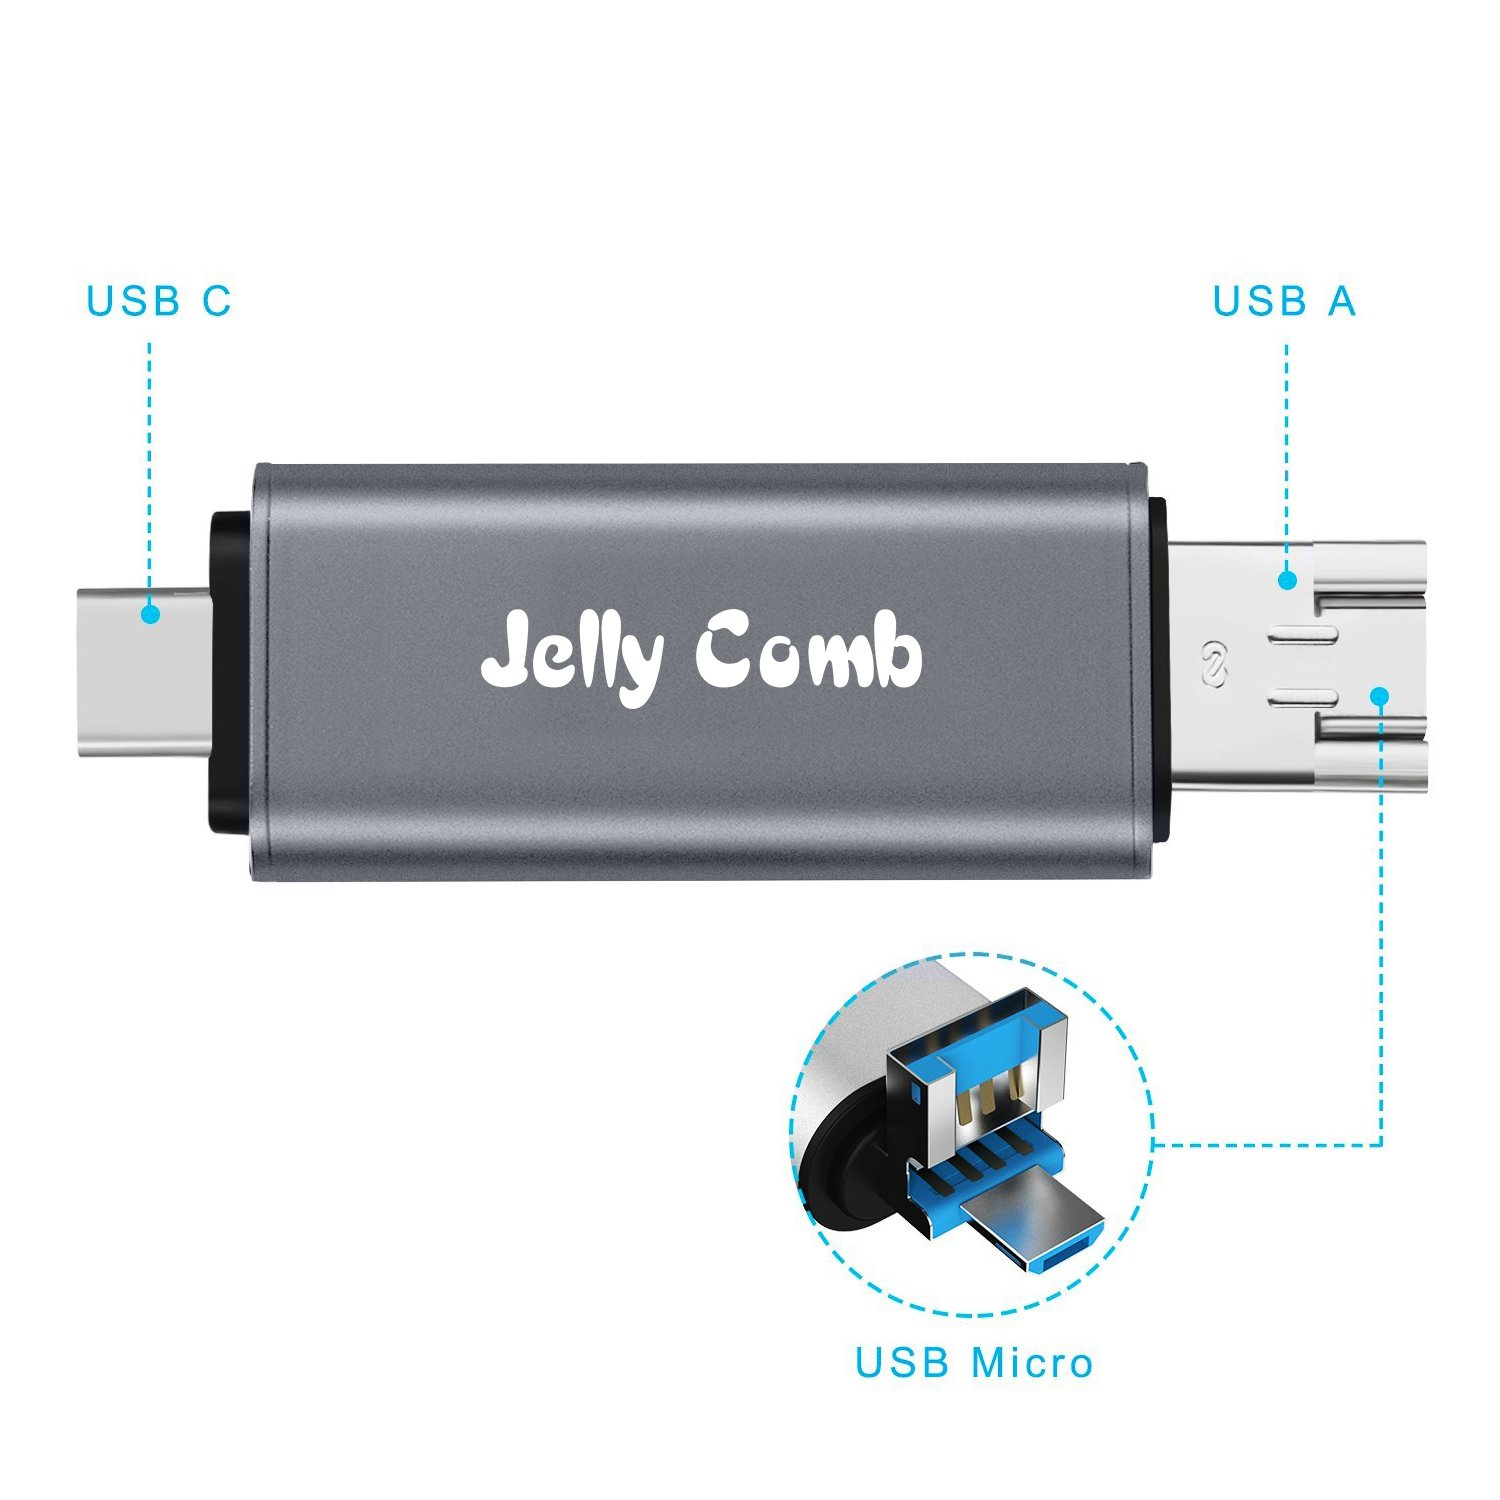 SD Card Reader, Jelly Comb 3-in-1 USB 3.0/USB C/Micro USB Card Reader - SD, Micro SD, SDXC, SDHC, Micro SDHC, Micro SDXC Memory Card Reader for MacBook PC Tablets Smartphones with OTG Function by Jelly Comb (Image #3)